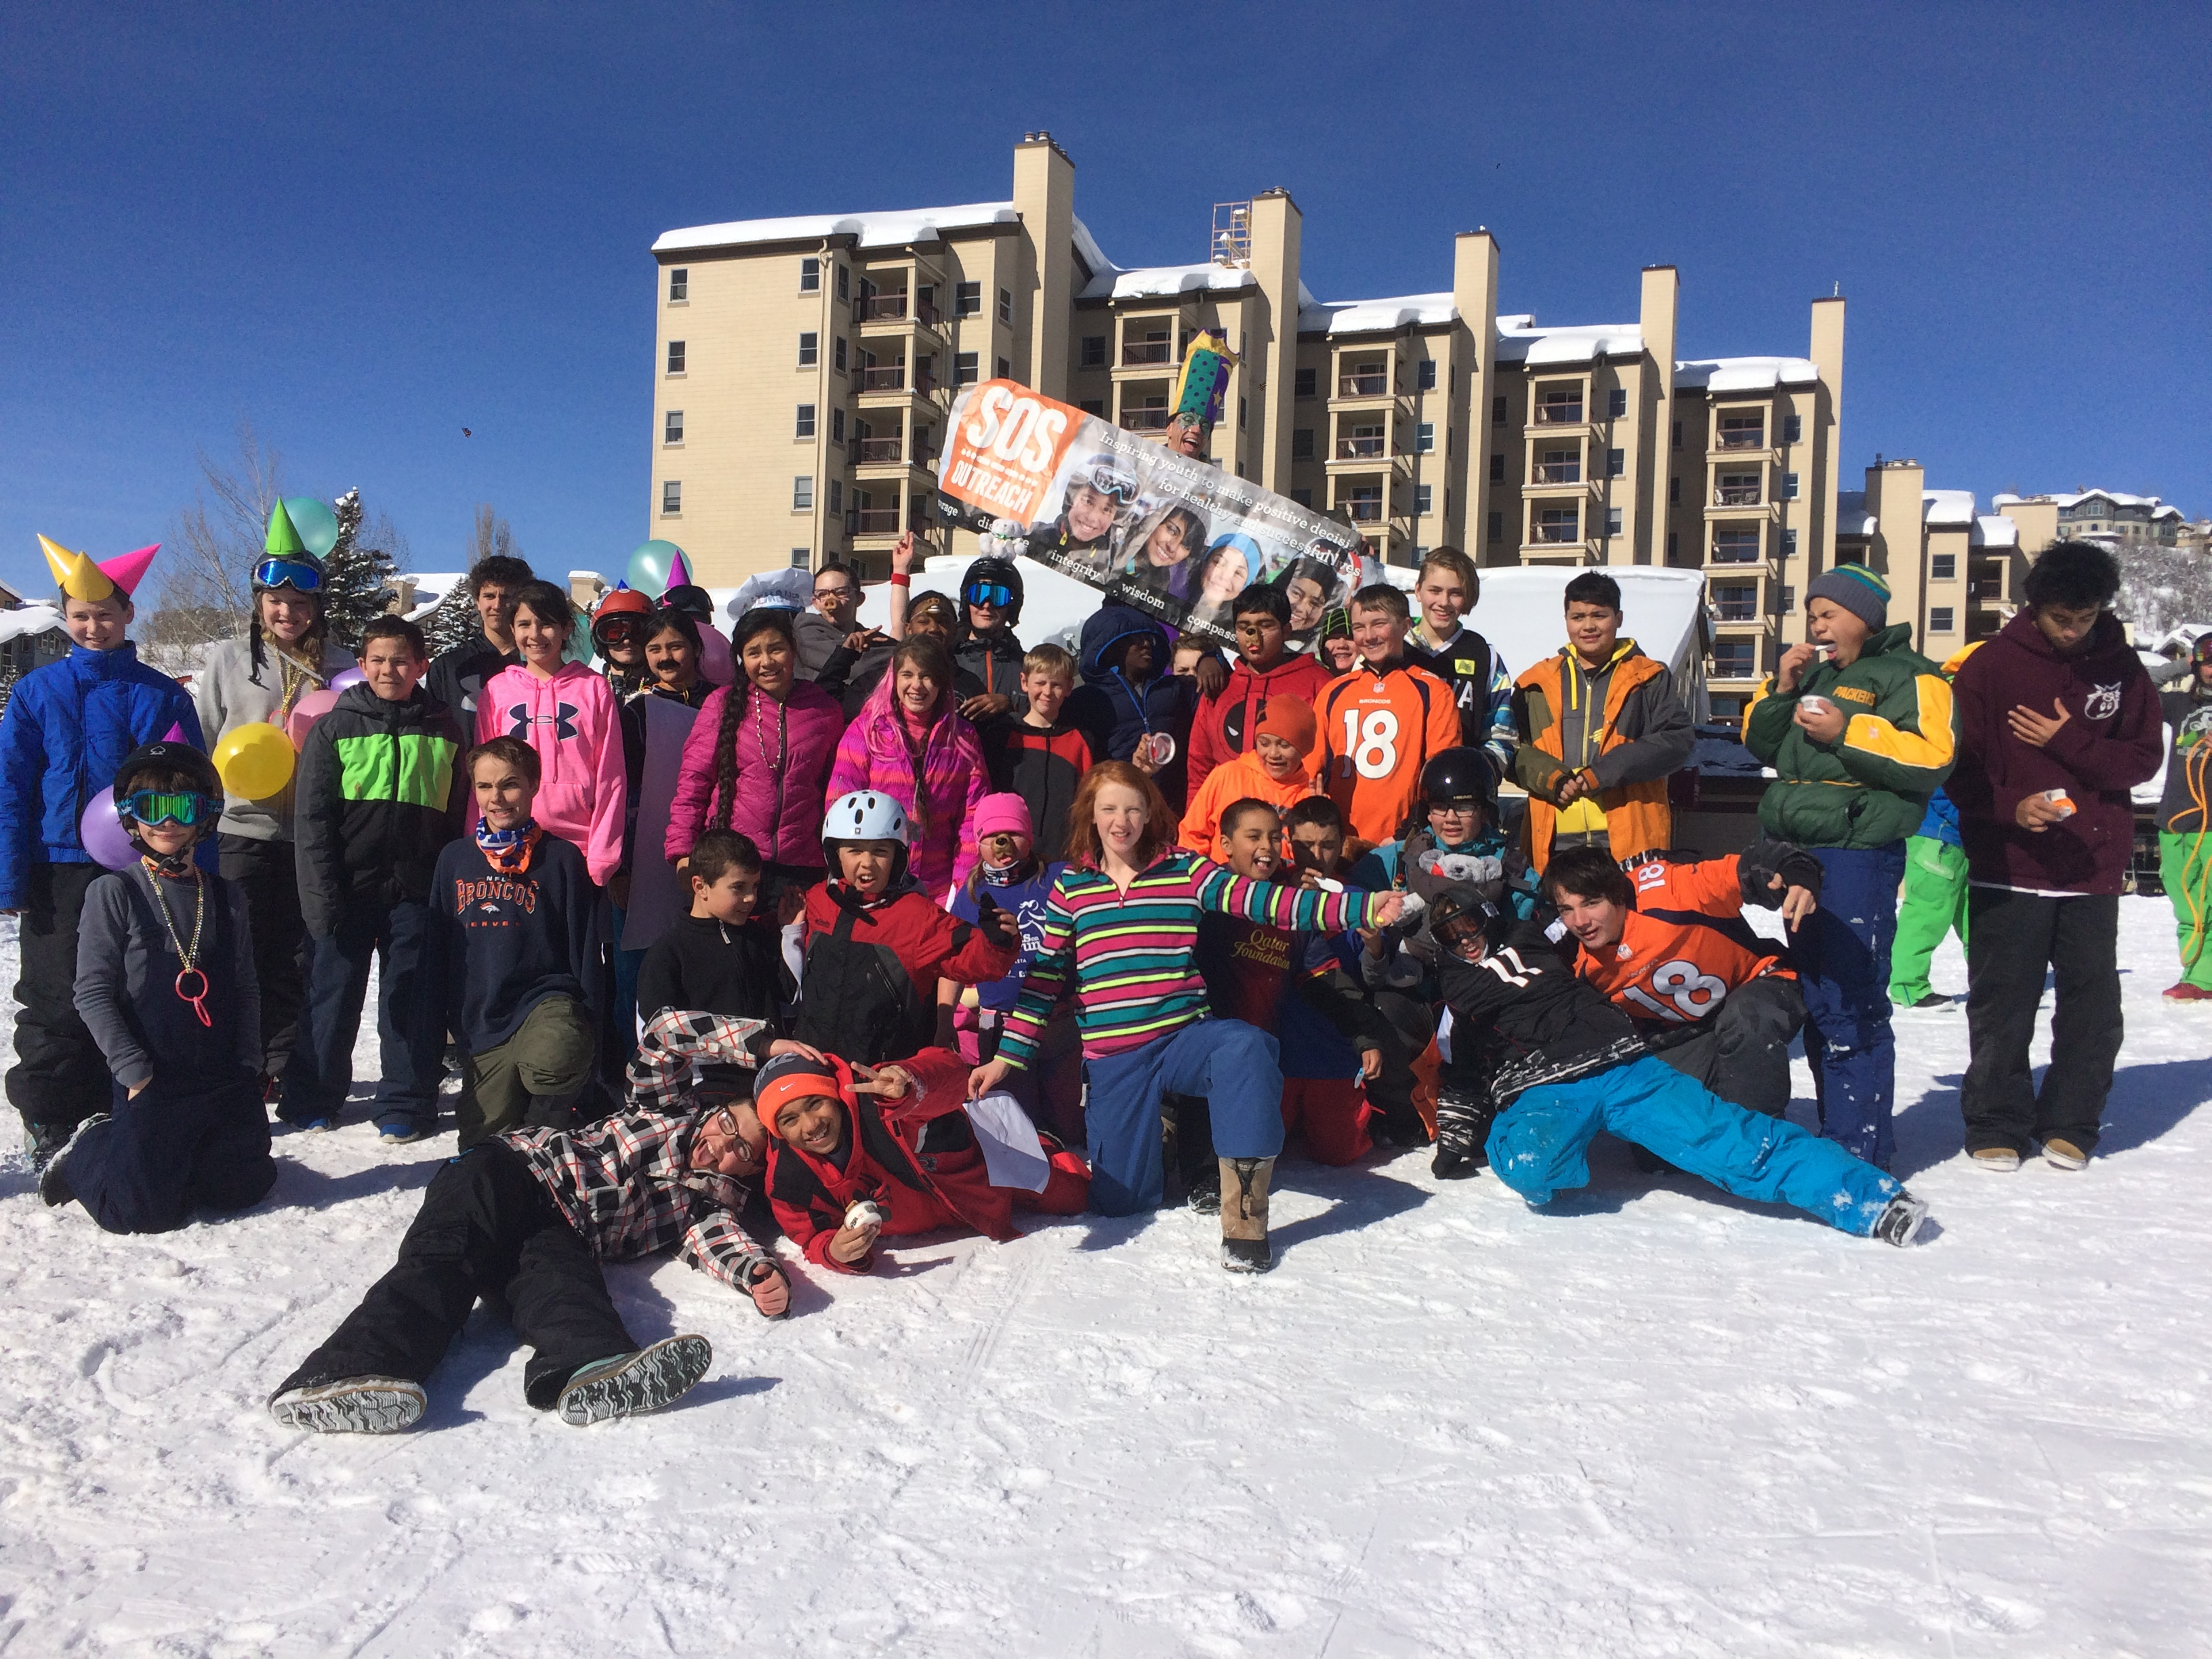 Group photo of youth standing in snow in snowboarding gear